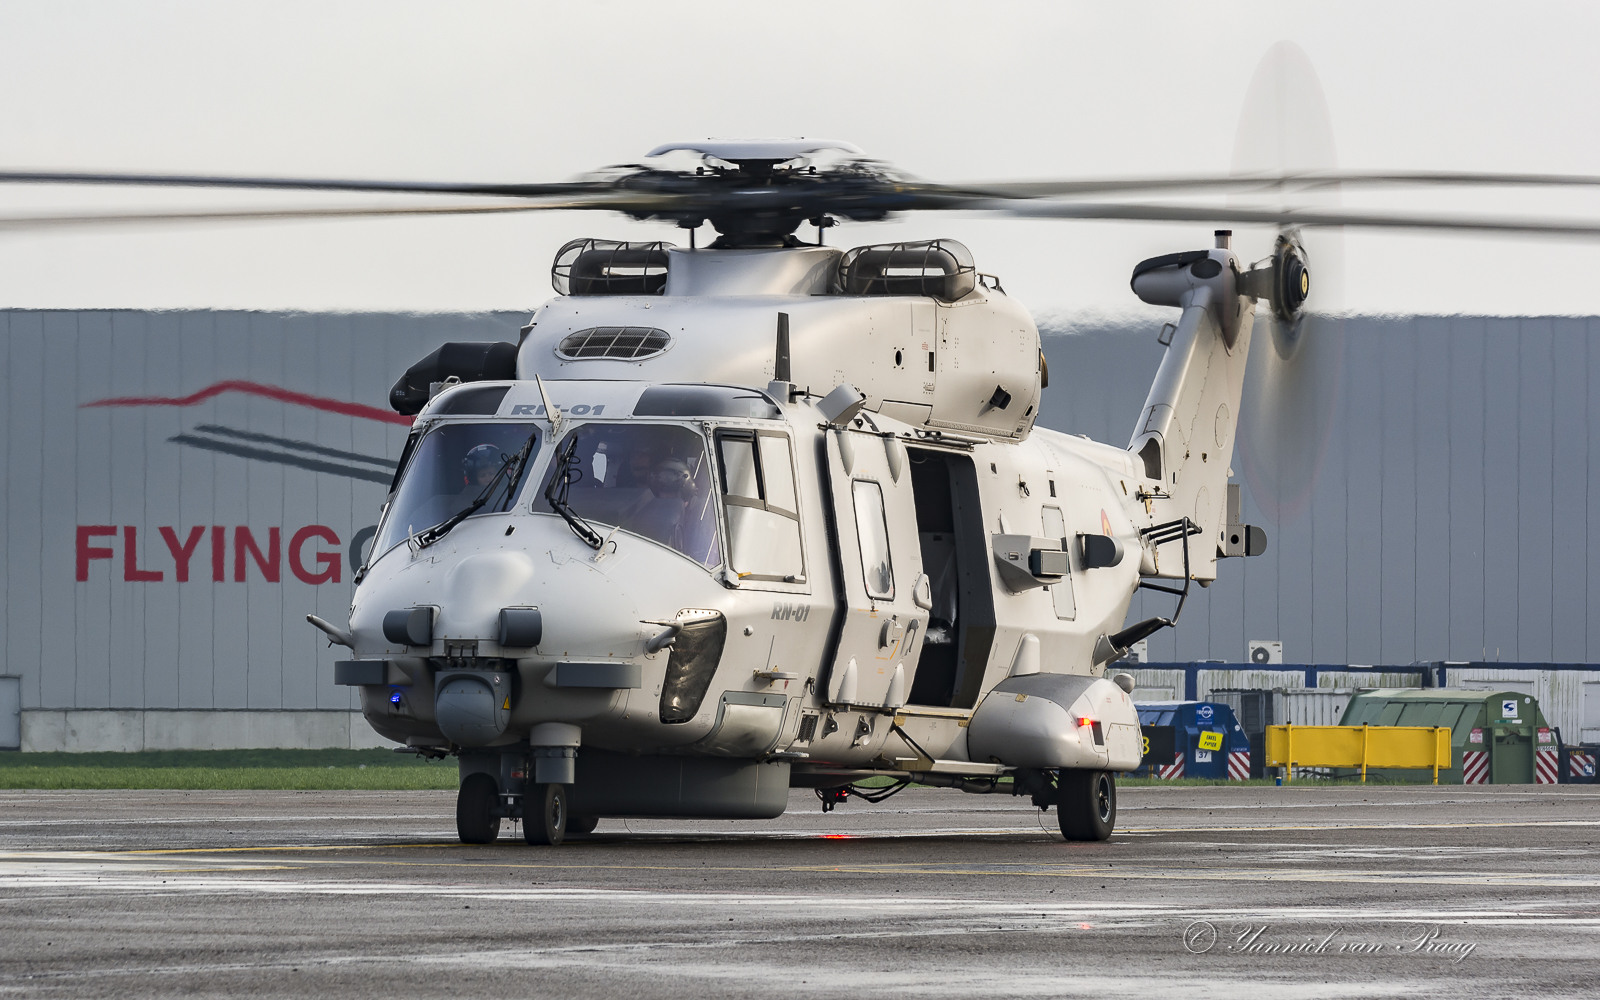 NH90 : les news - Page 12 39827403993_9c1f8eef3e_o